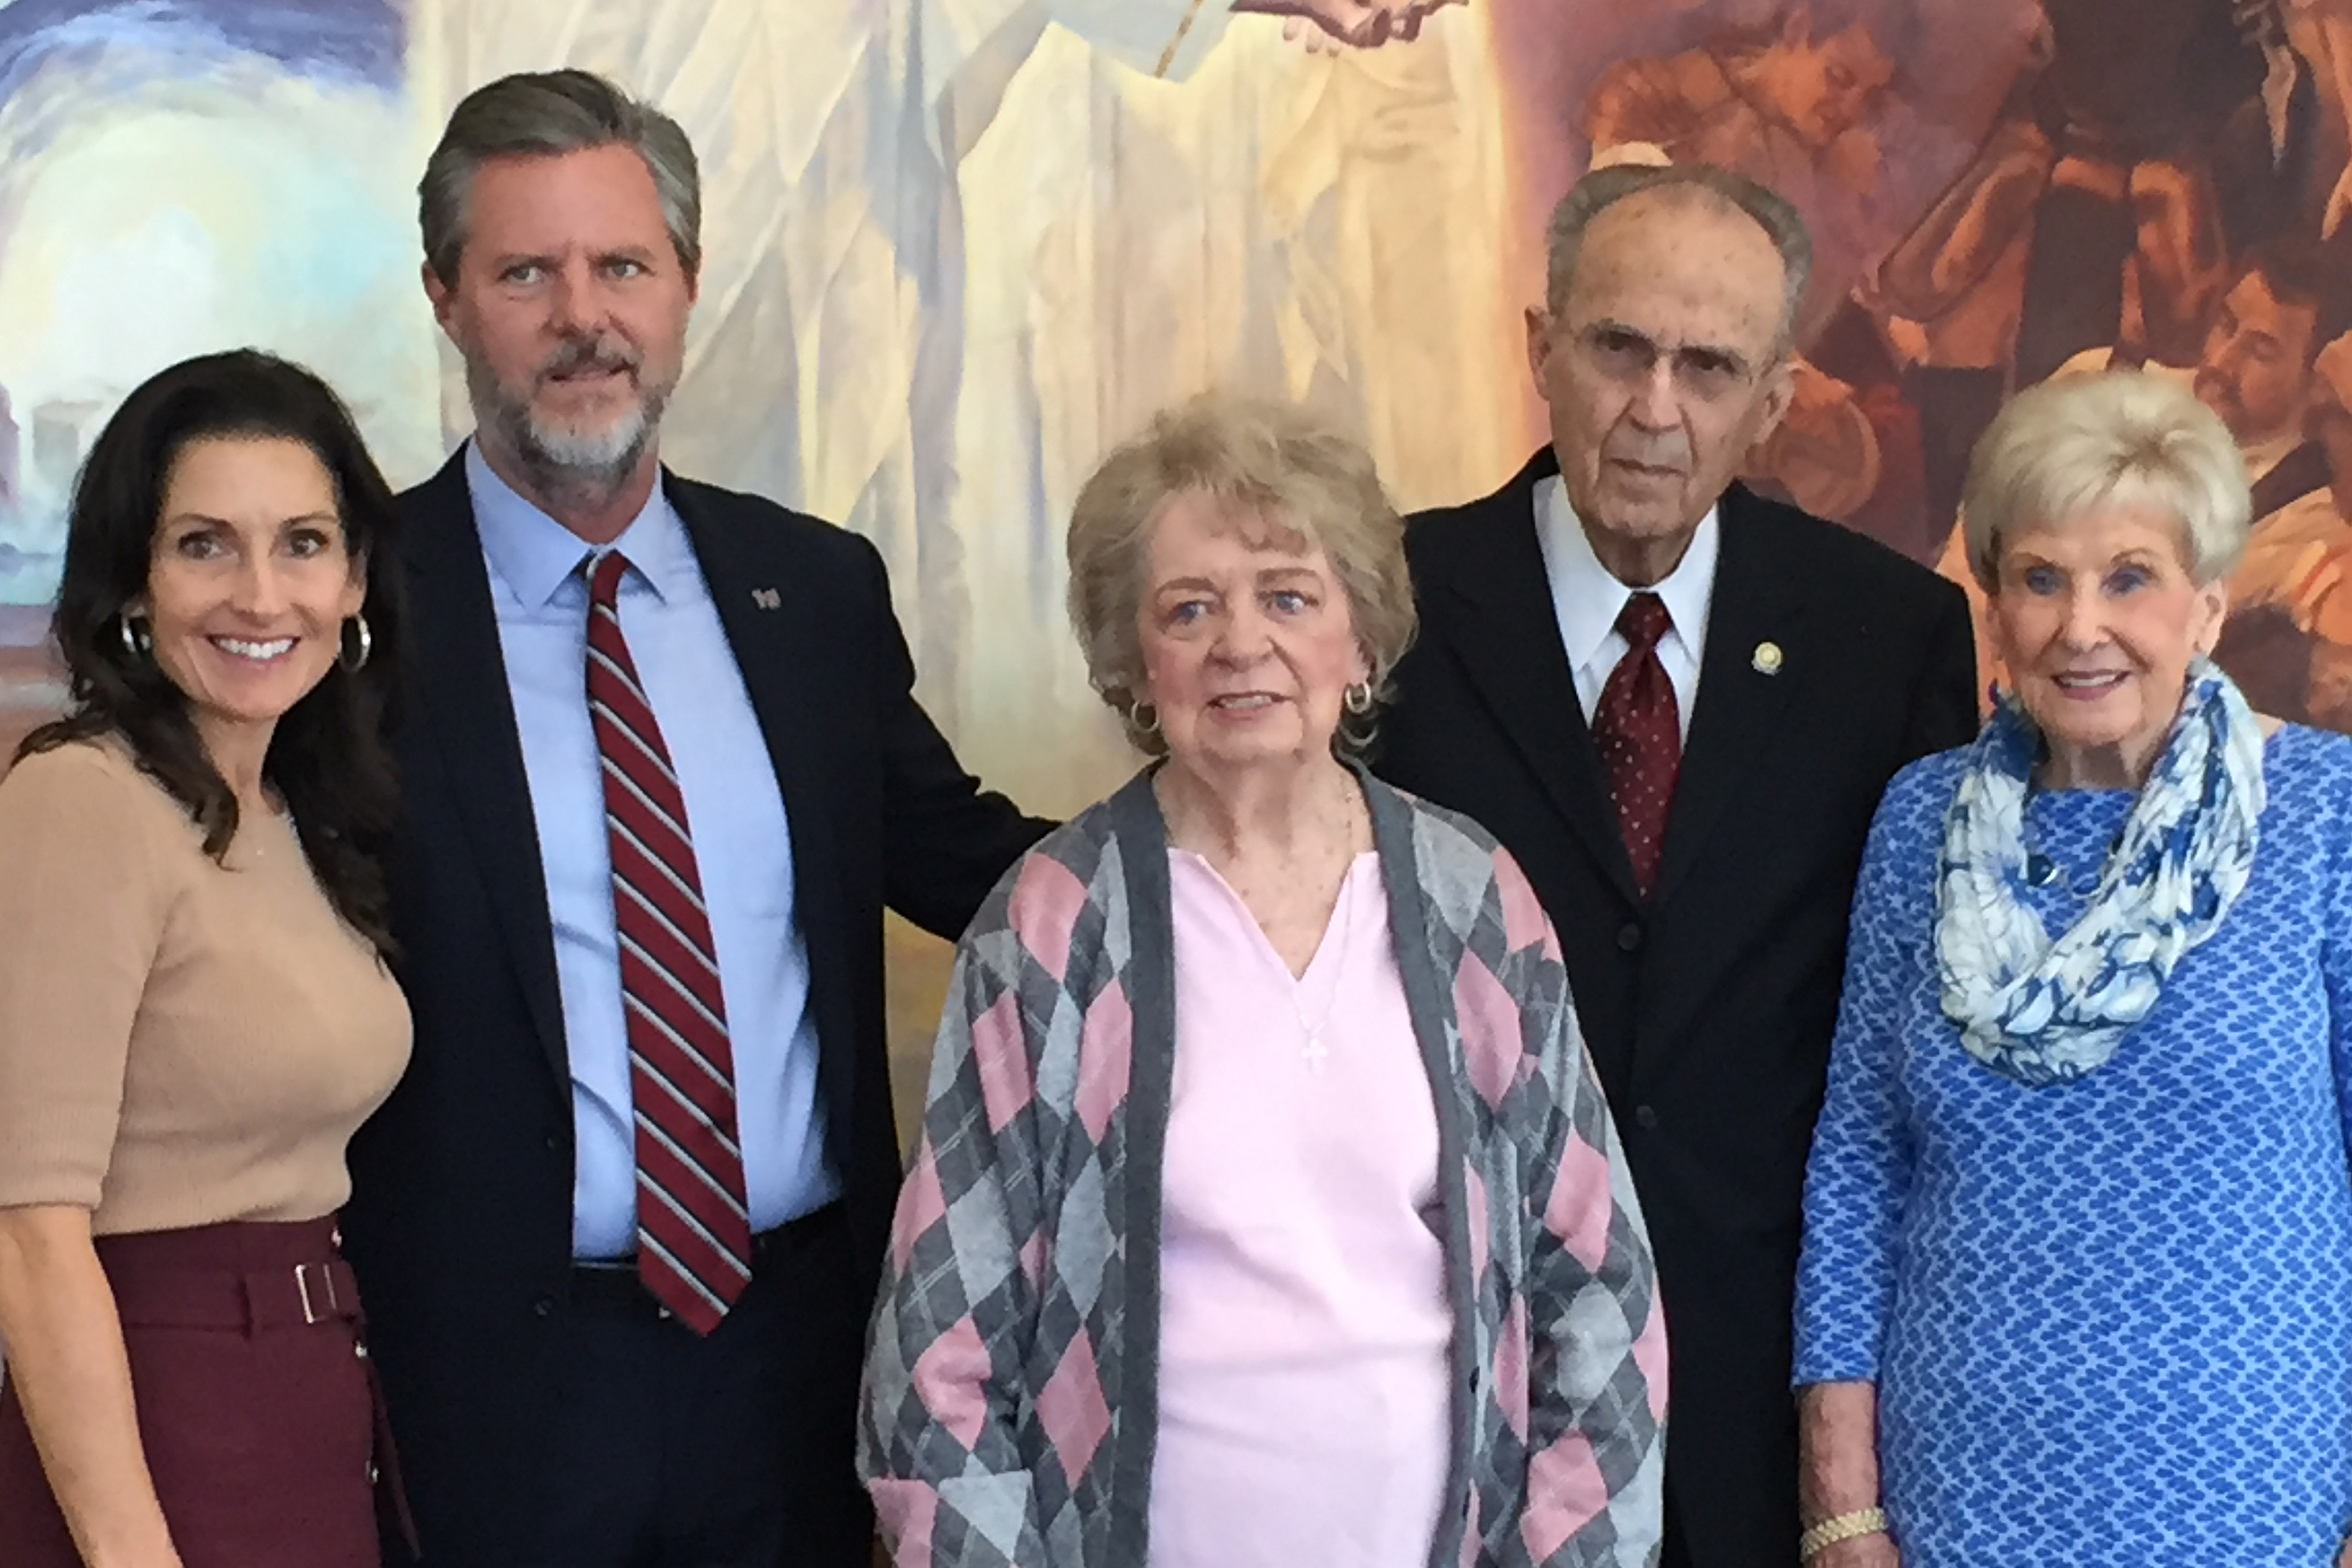 President Jerry Falwell and his wife, Becki, stand with donors Rebecca Thigpen Coulter and Dr. Troy L. Day and Day's wife, Pauline, in front of a painting of the Resurrection of Christ.